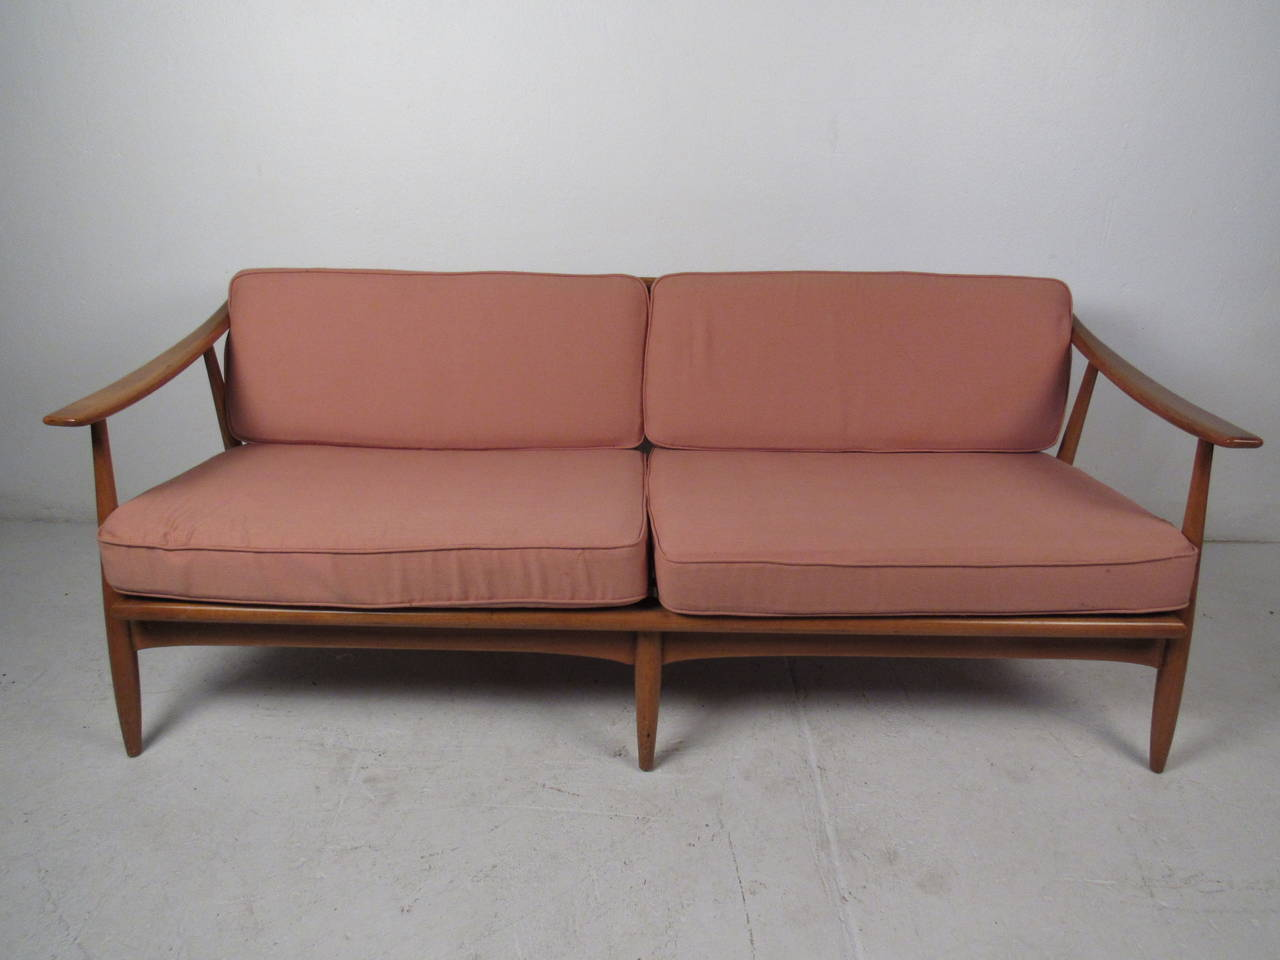 Modern wood furniture sofa - Mid Century Modern Wood Frame Sofa 2